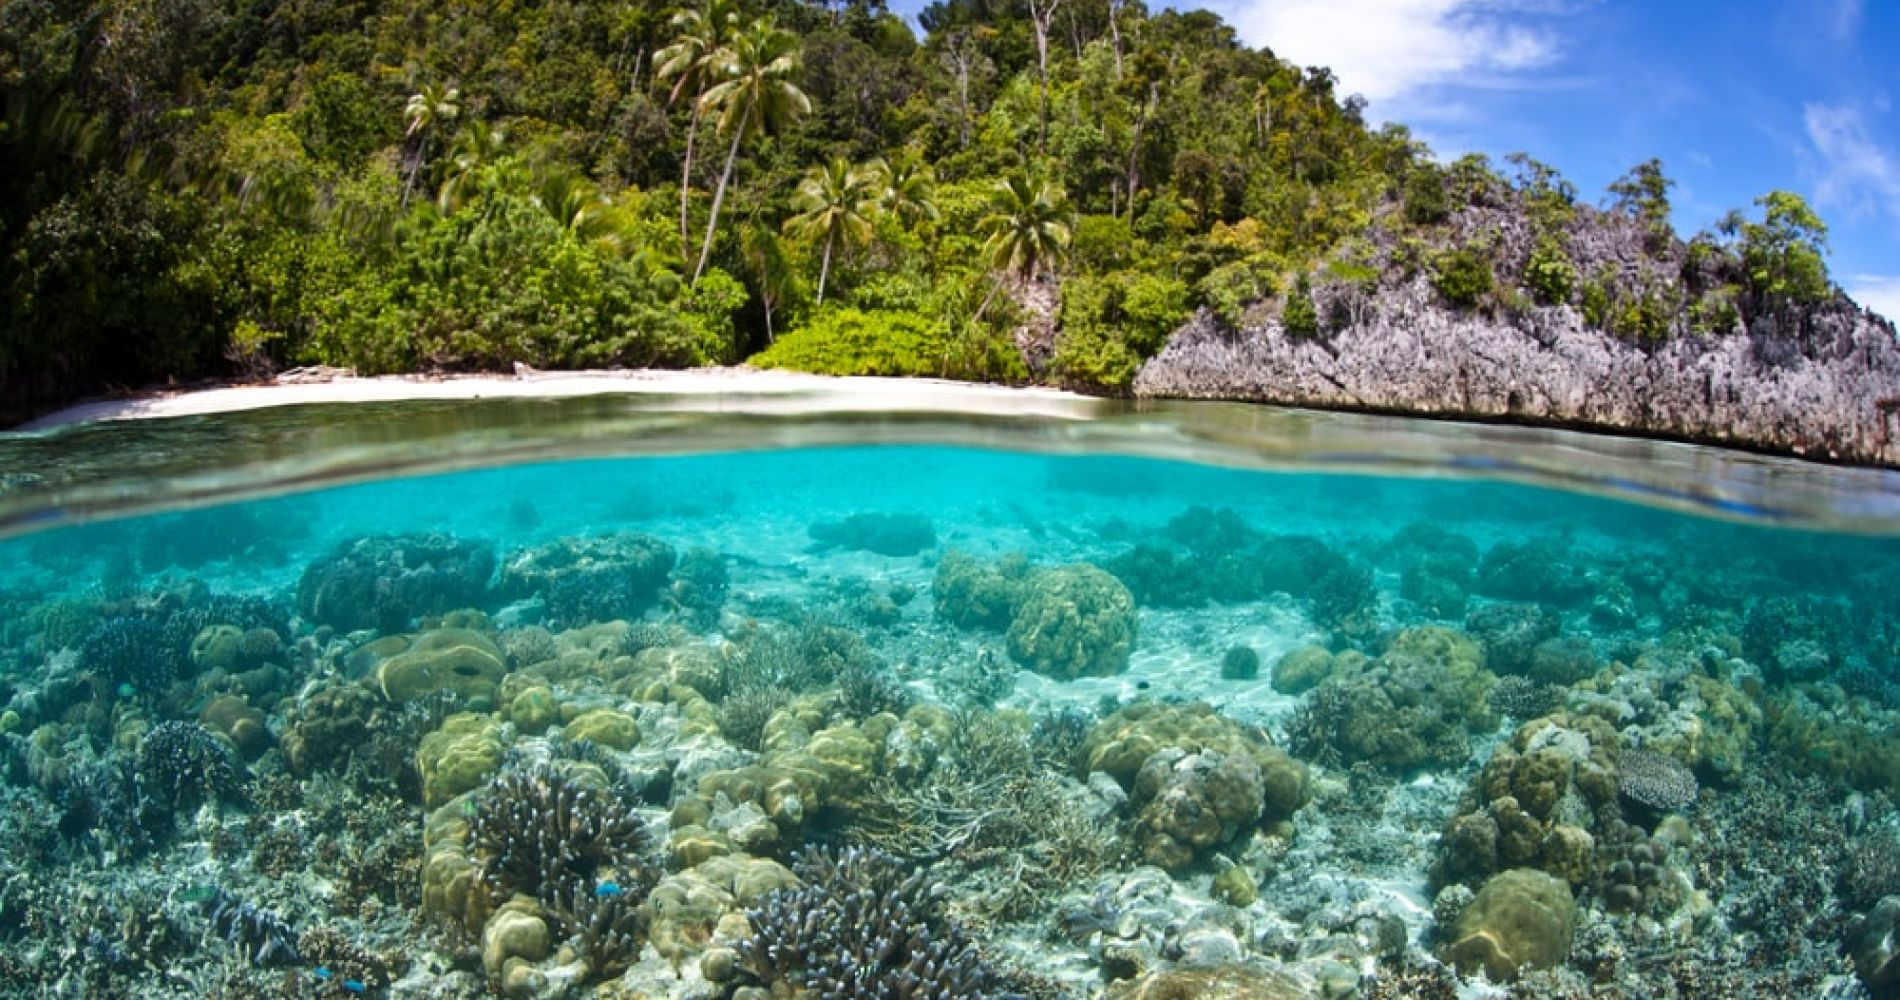 Snorkling the unexplored reefs of the Bainings, Papua New Guinea